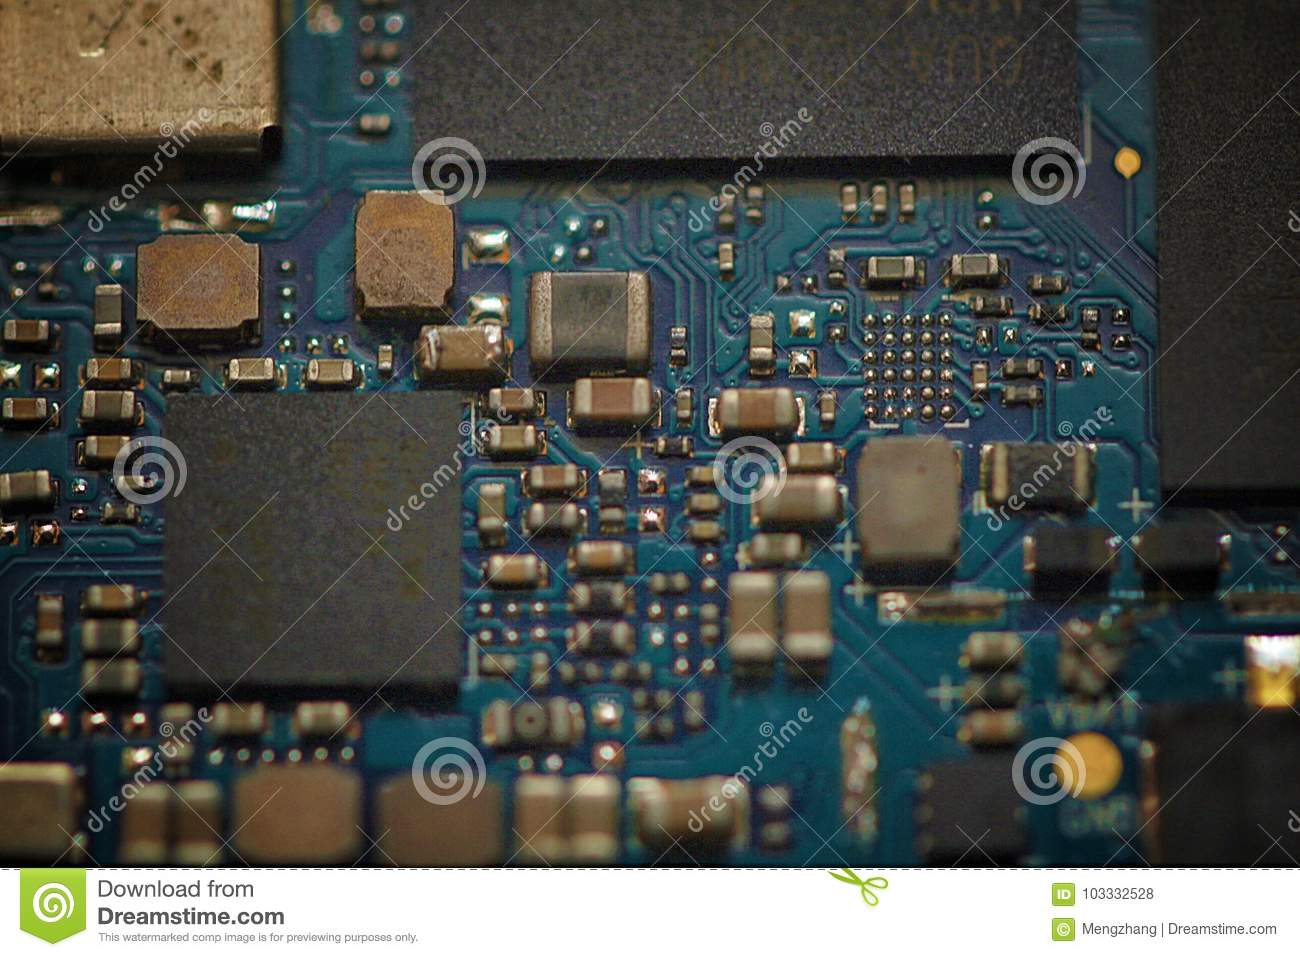 Mobile phone main board stock photo. Image of connection - 103332528